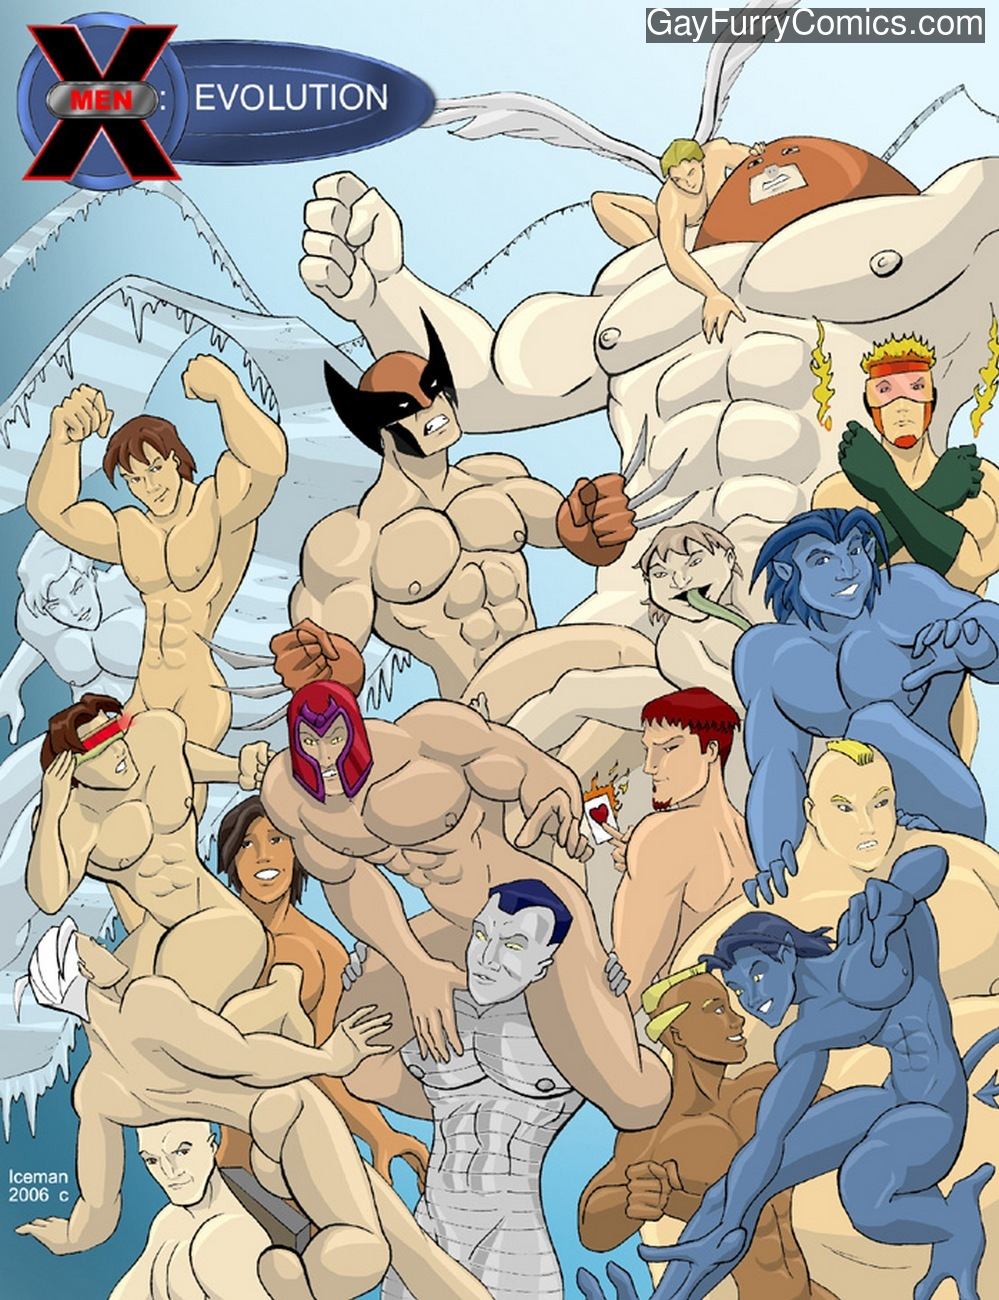 X-Men Evoloution gay furry comic